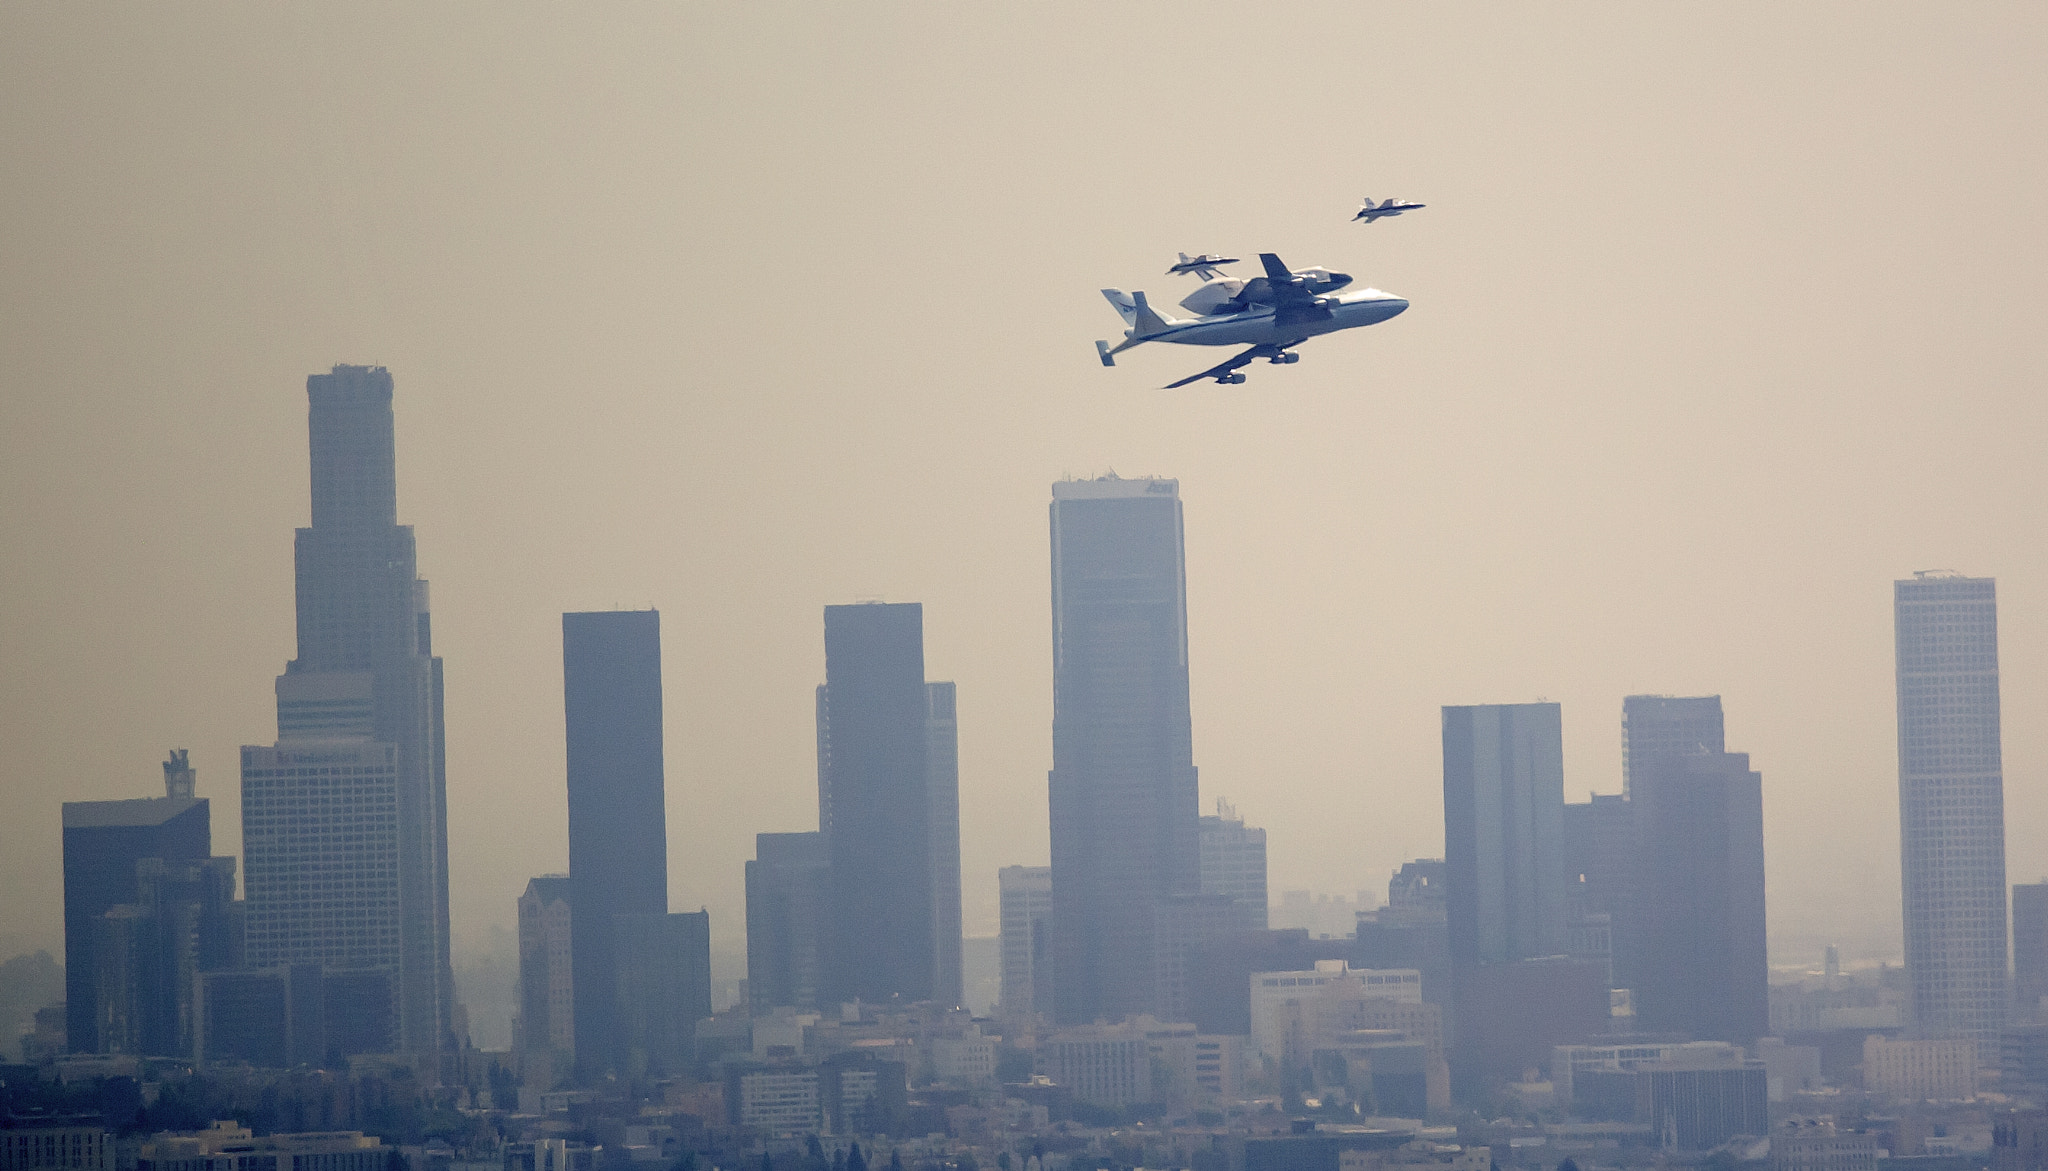 Photograph Endeavour over downtown L.A. by Gilad Rom on 500px